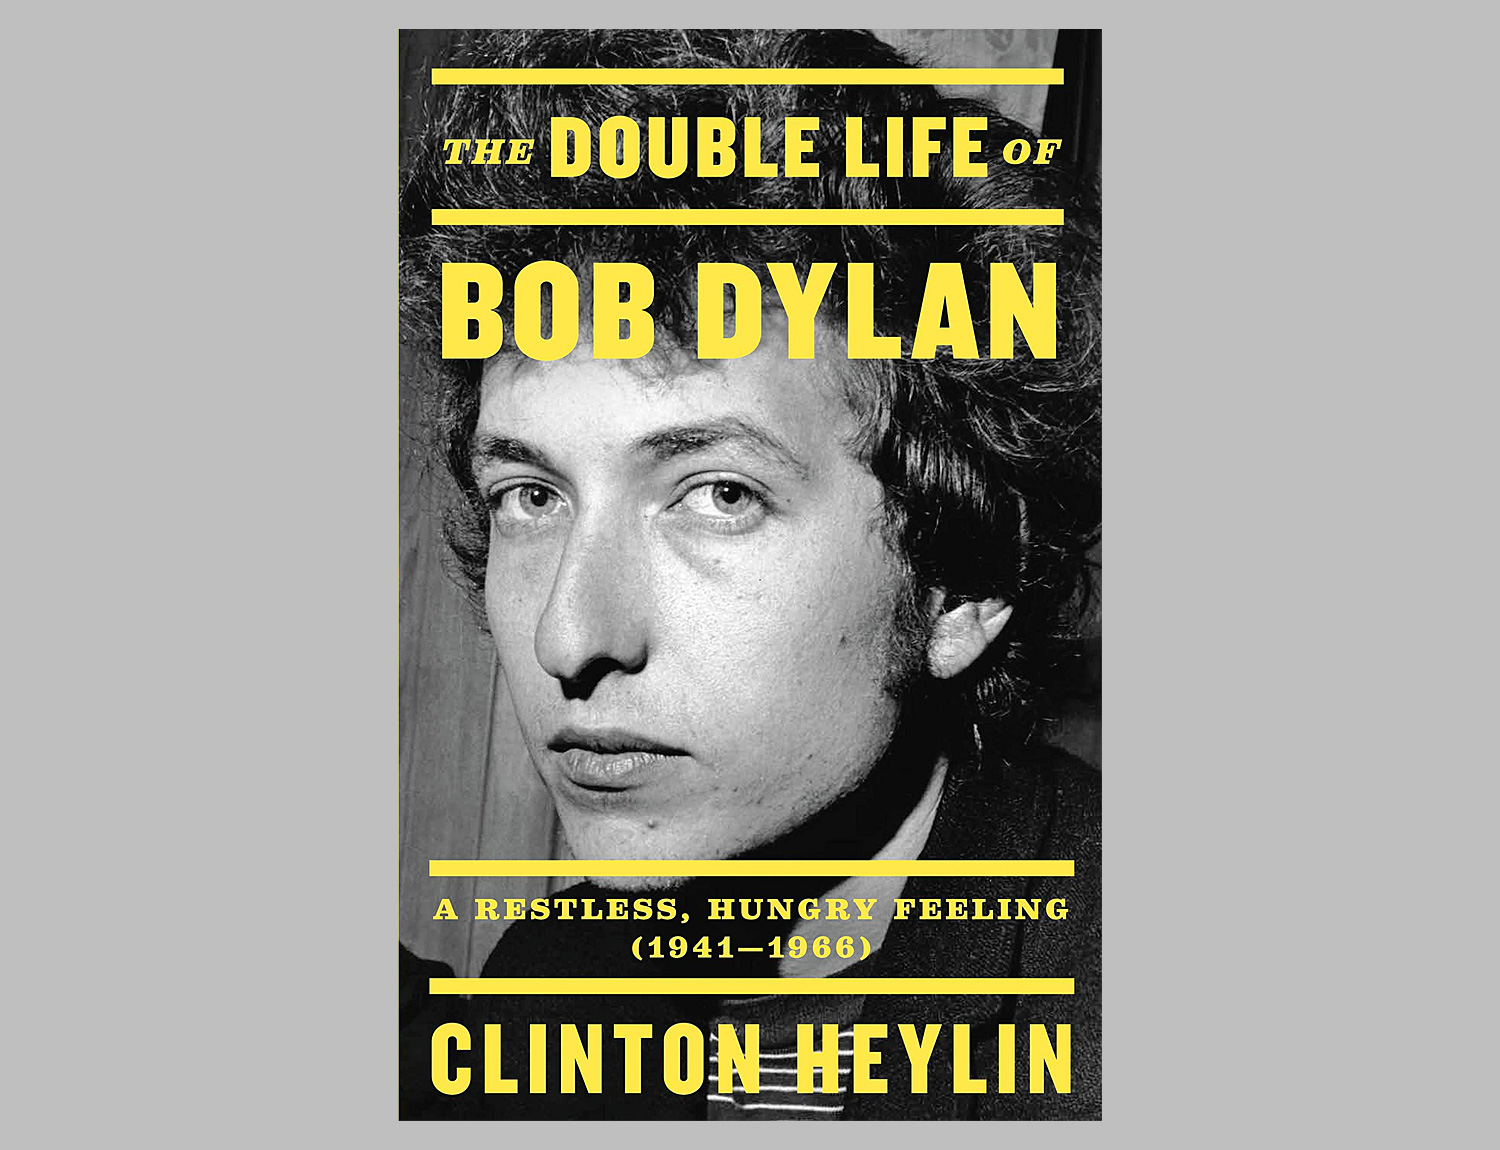 The Double Life of Bob Dylan: A Restless, Hungry Feeling, 1941-1966 at werd.com